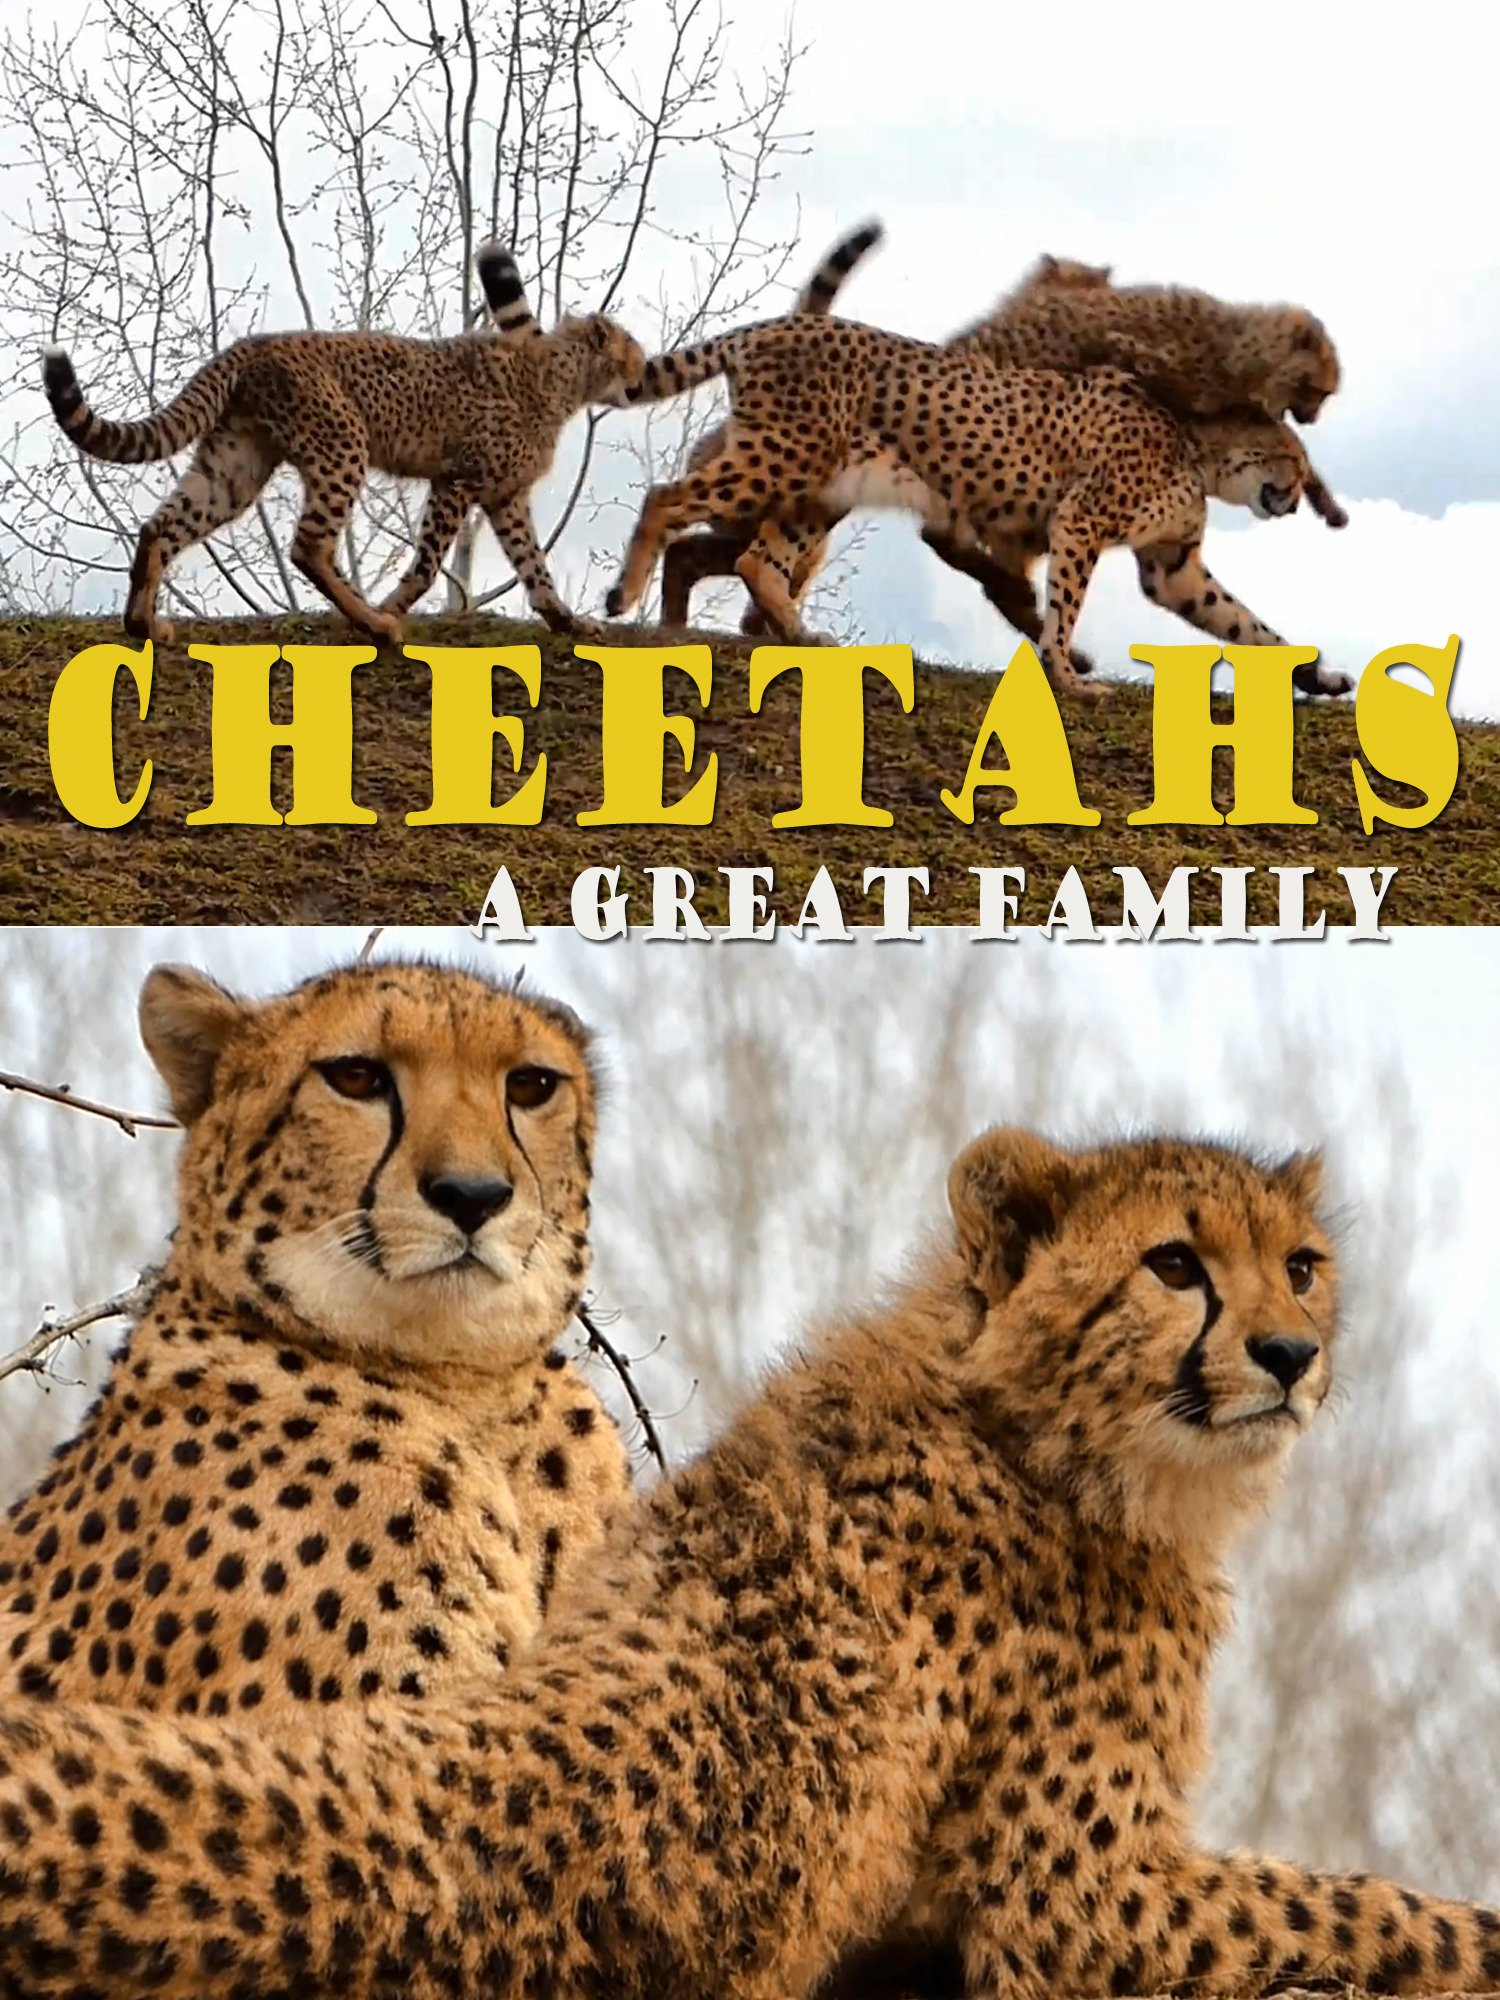 Cheetahs. A great family